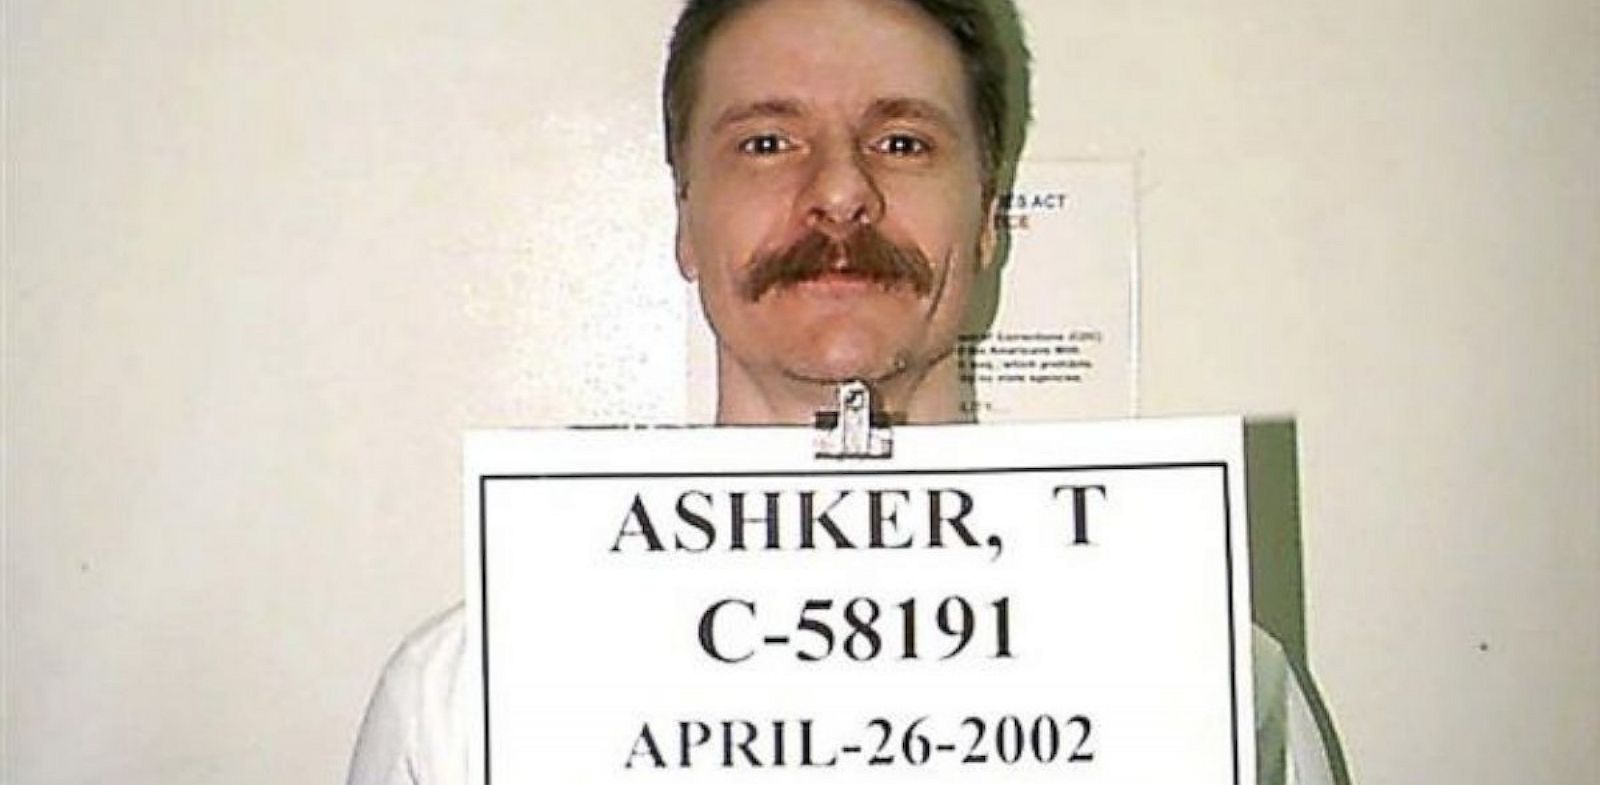 PHOTO: Todd Ashker, an inmate at Pelican Bay State Prison, has staged a hunger strike within the prison.